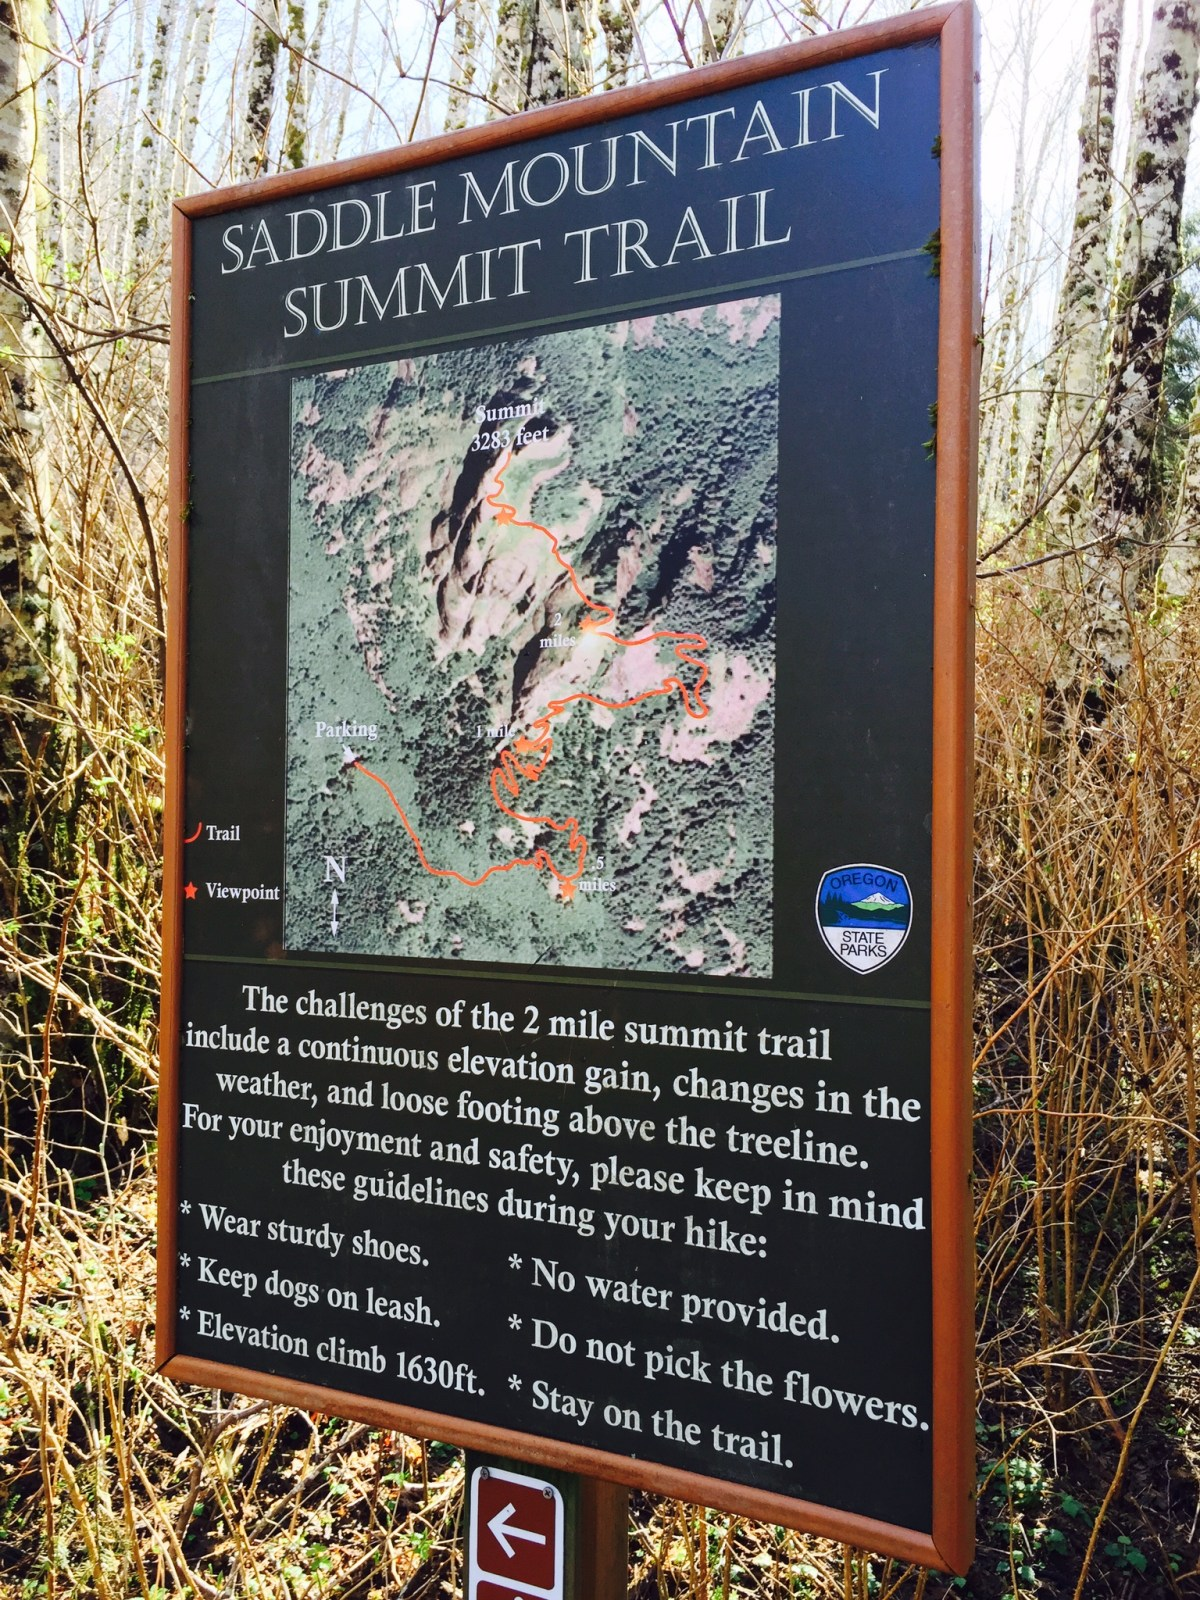 Trail Tip: Use your cell phone to take a picture of the map at the trailhead in case you get lost or forgot to bring a GPS.